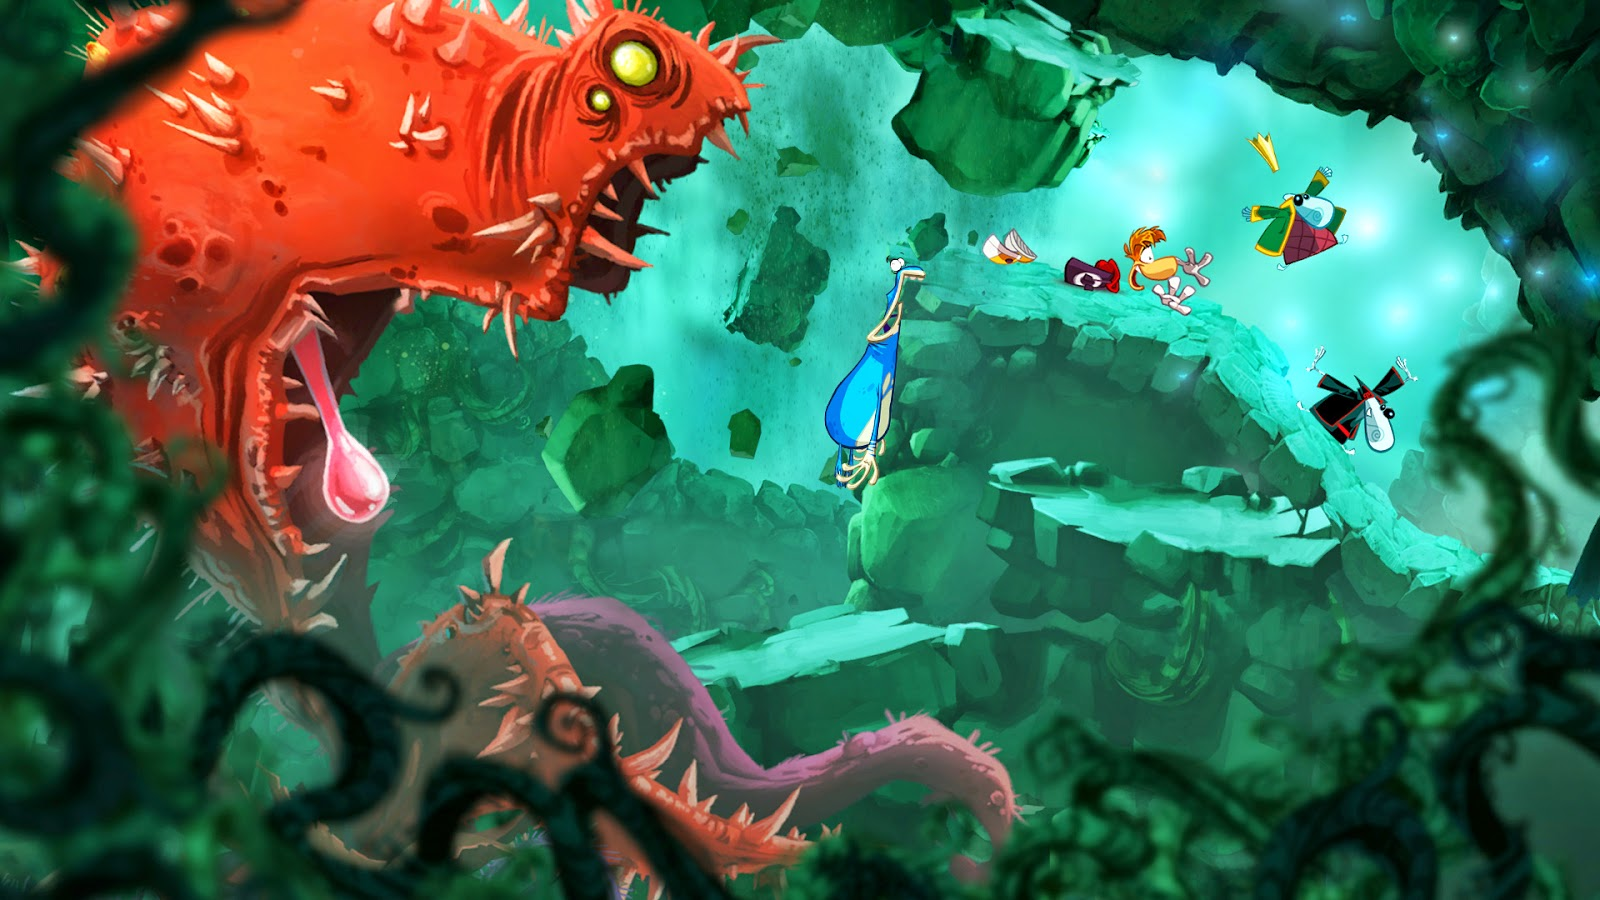 Rayman origins screenshot of a boss fight